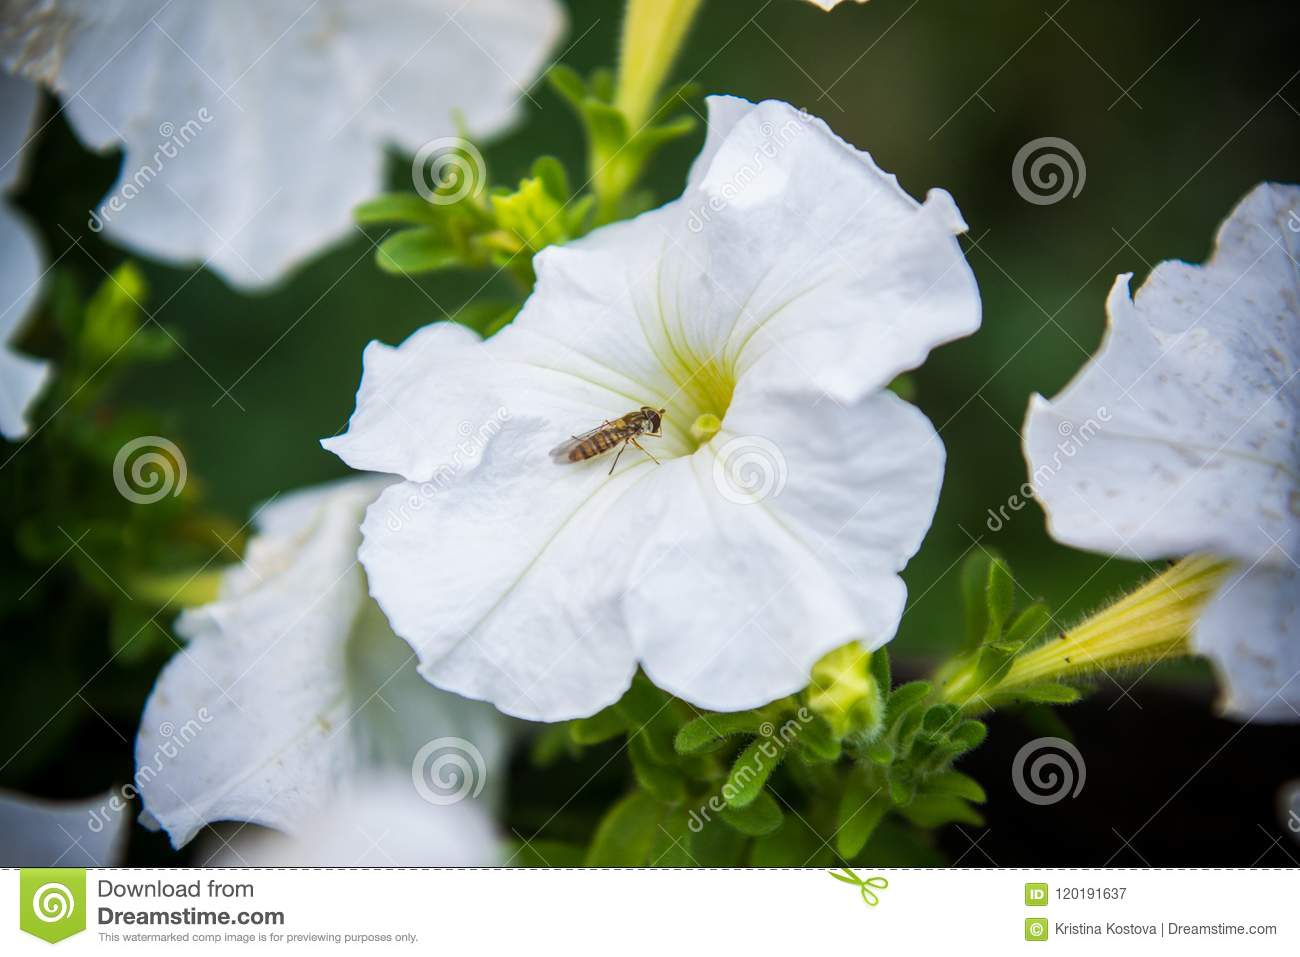 White Petunia Flower With A Small Fly Stock Image Image Of Floral